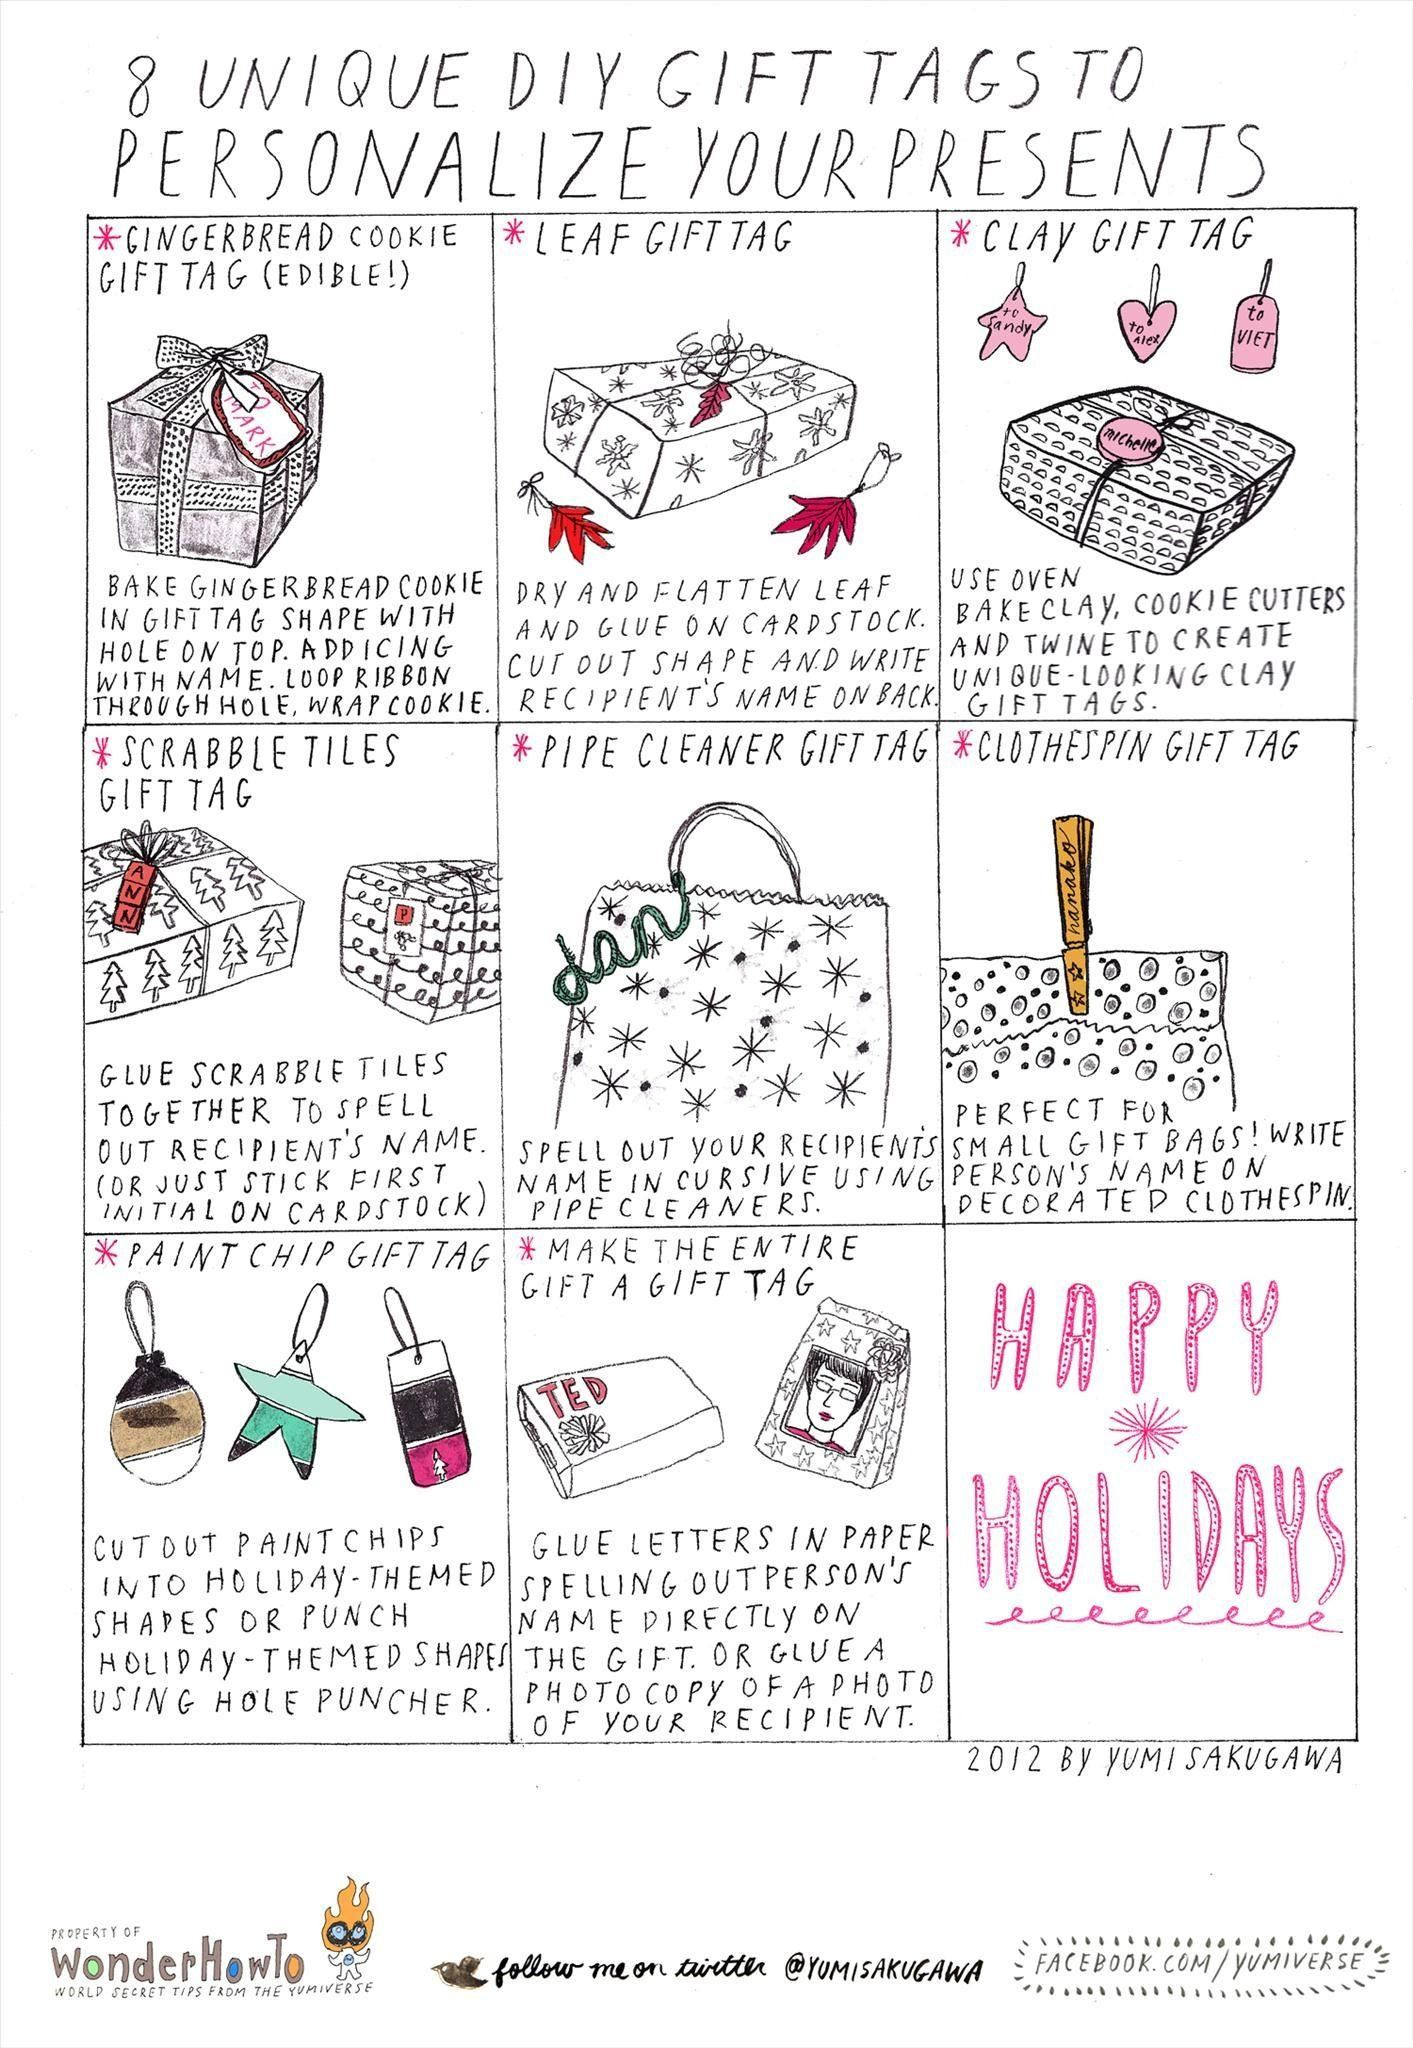 8 Unique DIY Gift Tag Ideas for Personalizing Your Holiday Gifts